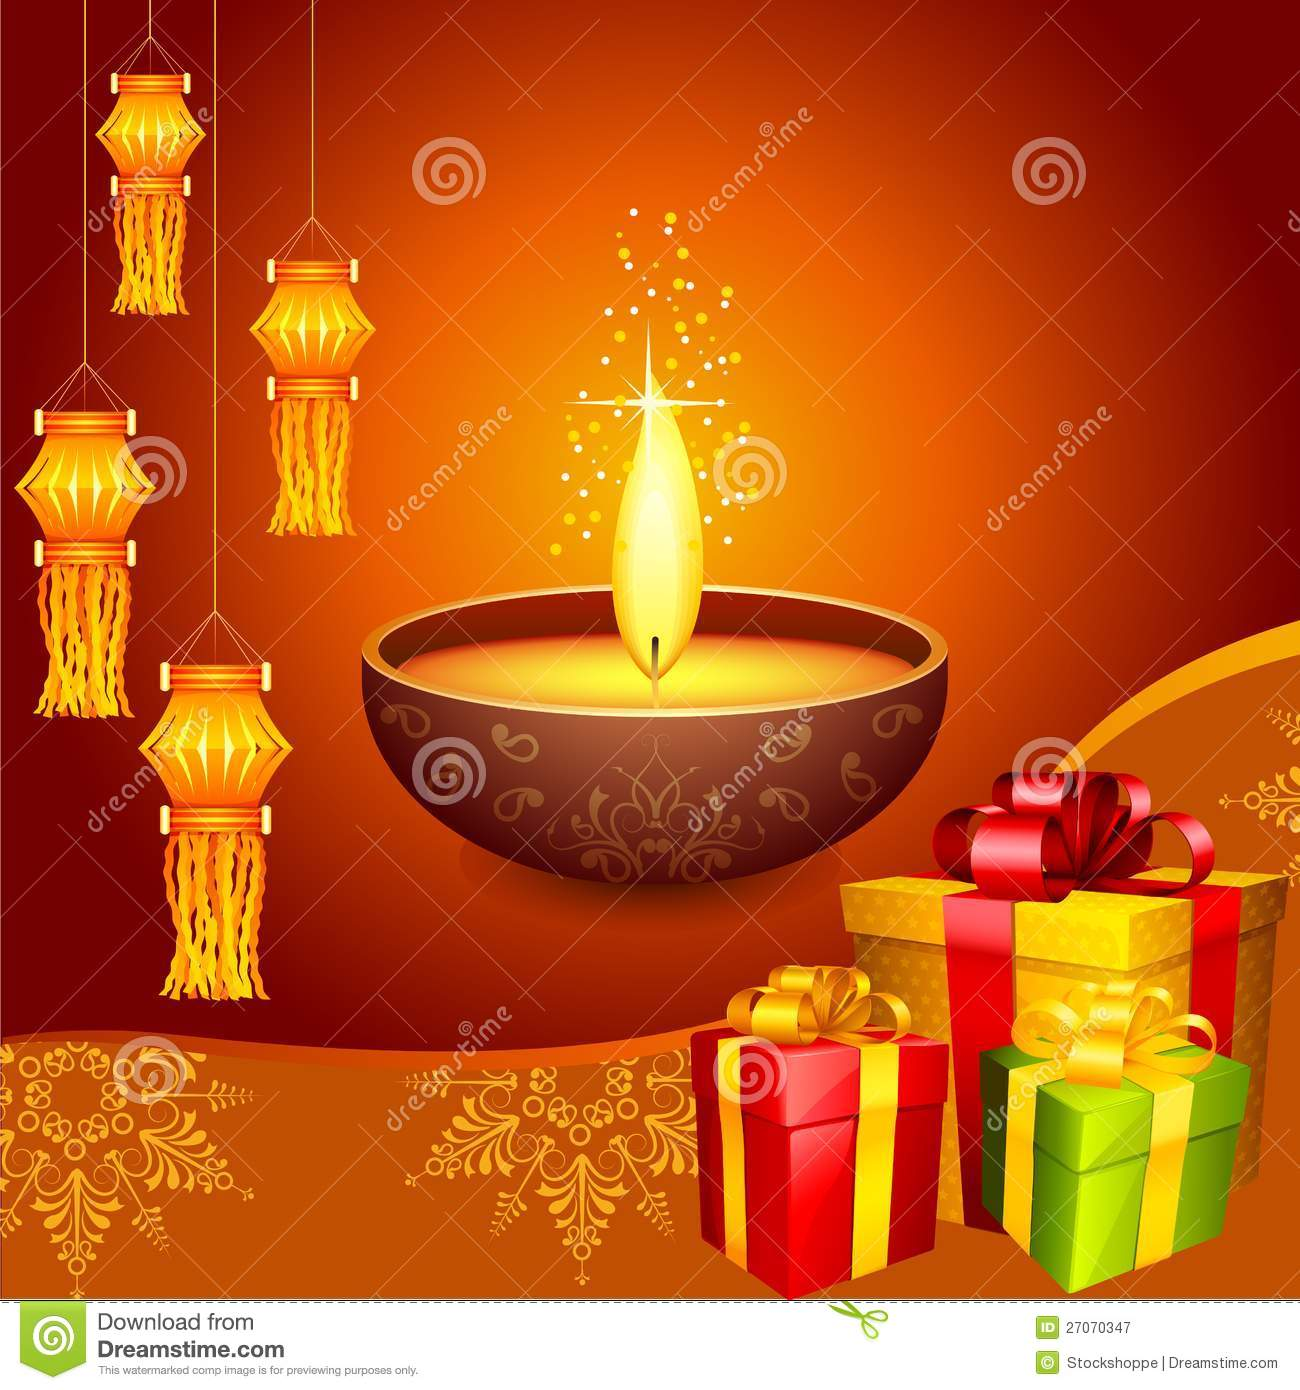 Decorating Home For Diwali: Diwali Decoration Royalty Free Stock Photography